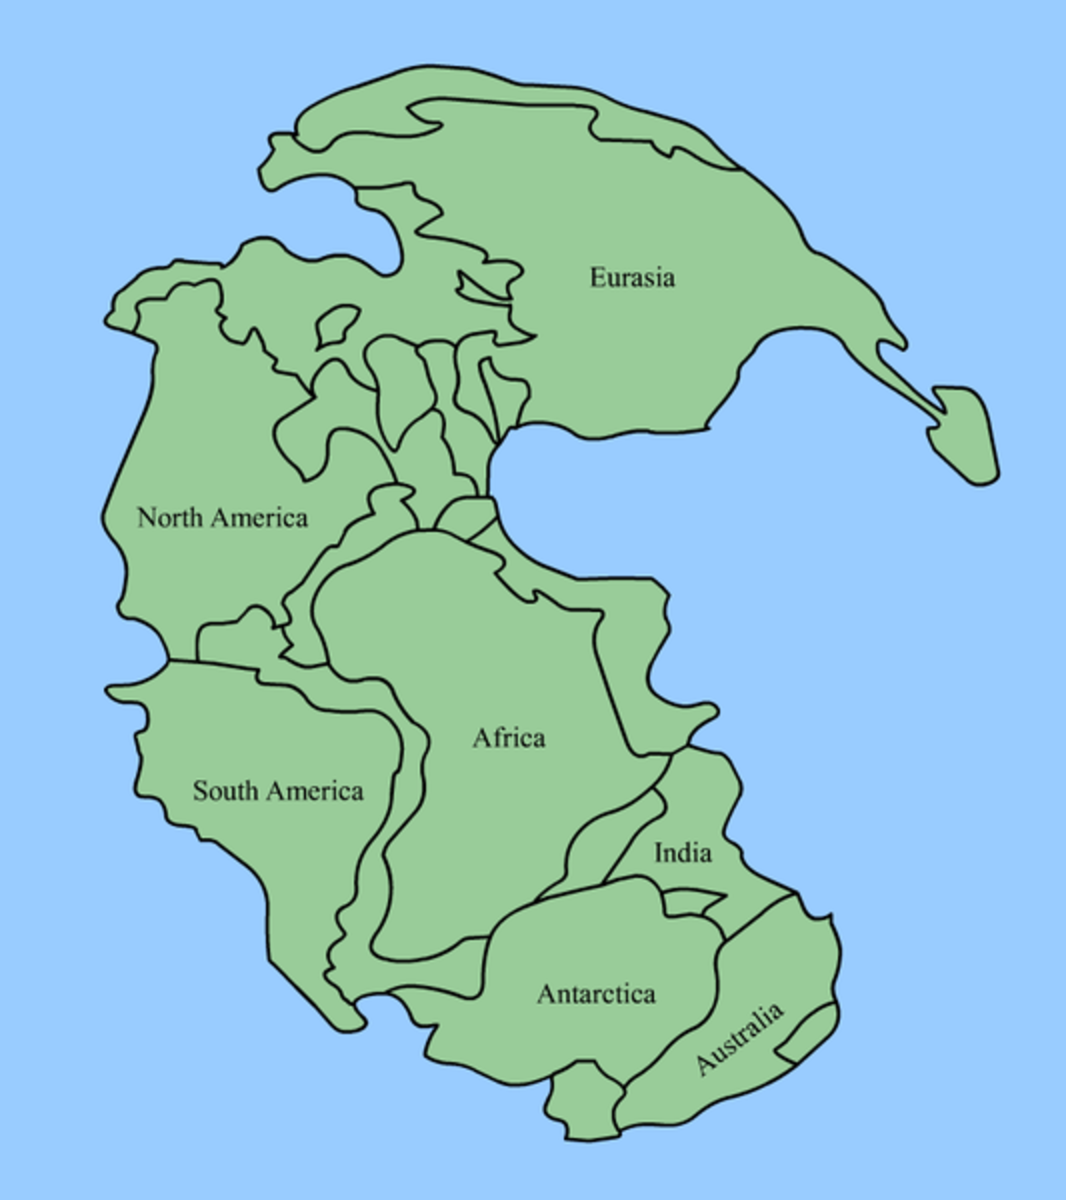 """The earth's continents as they were positioned in the original land mass known as """"Pangea"""""""